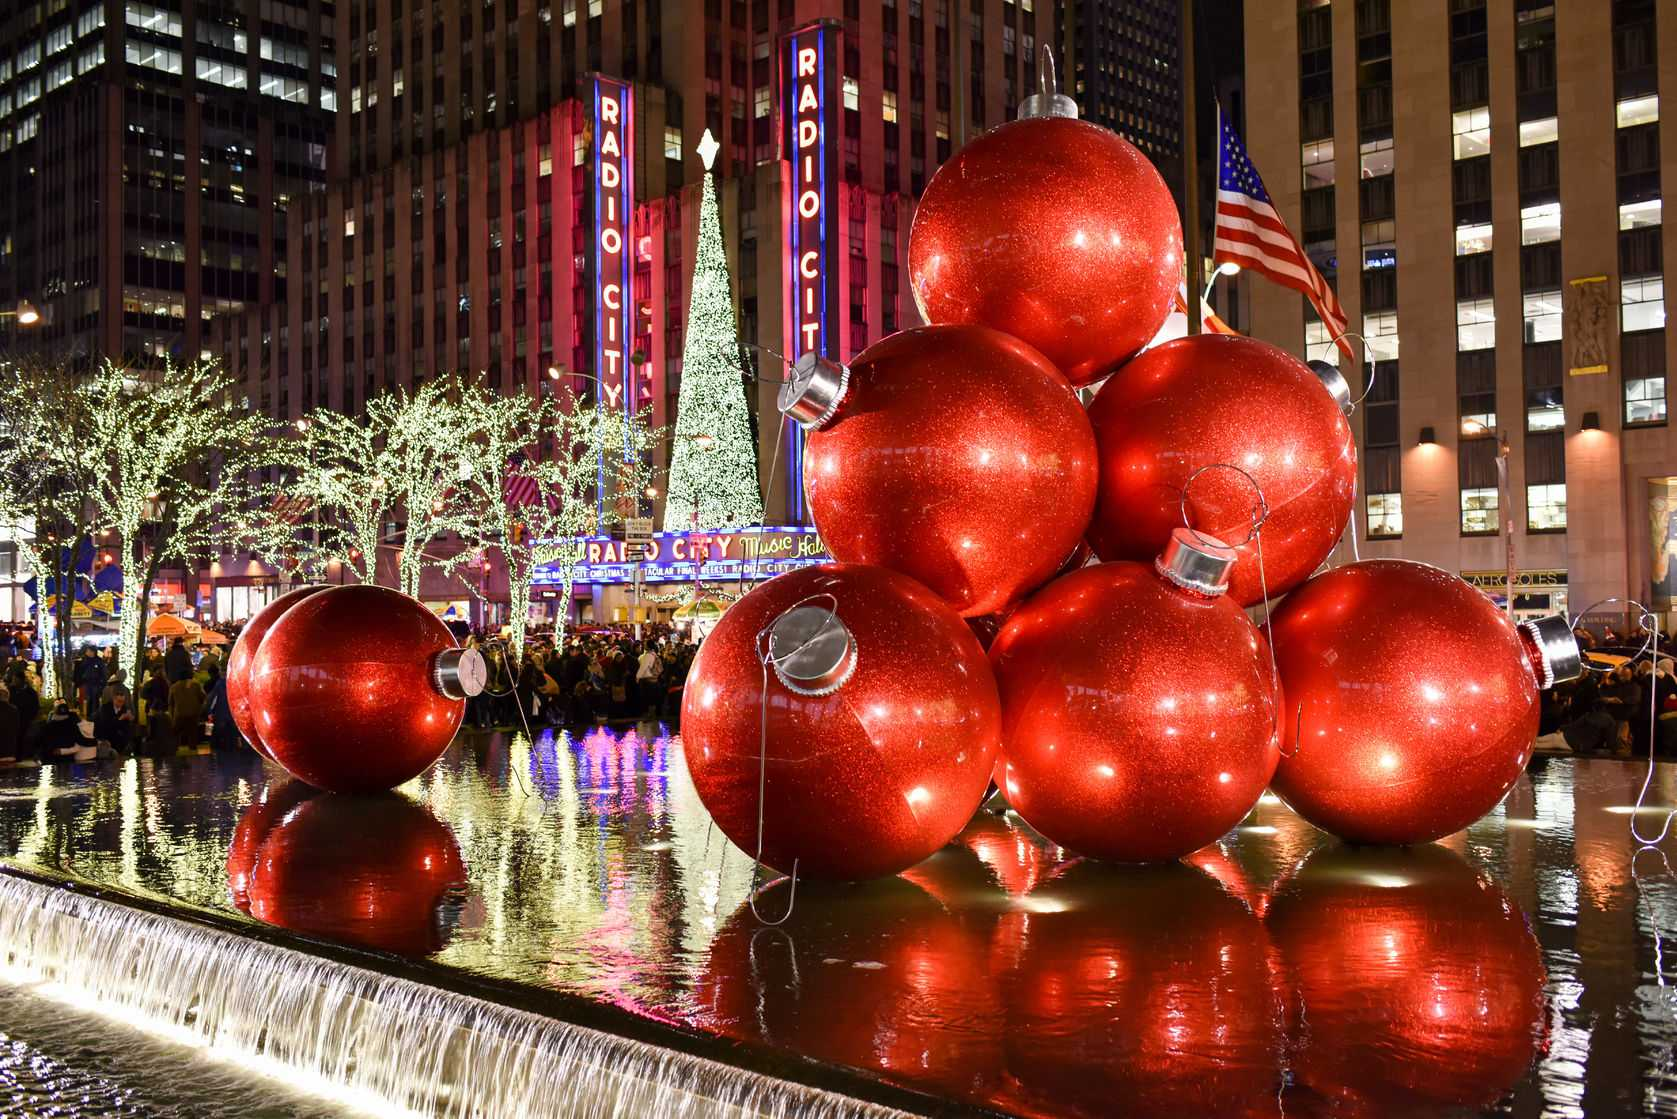 36547224 - new york city - dec. 25, 2014: new york city landmark, radio city music hall in rockefeller center decorated with christmas decorations in midtown, manhattan nyc.